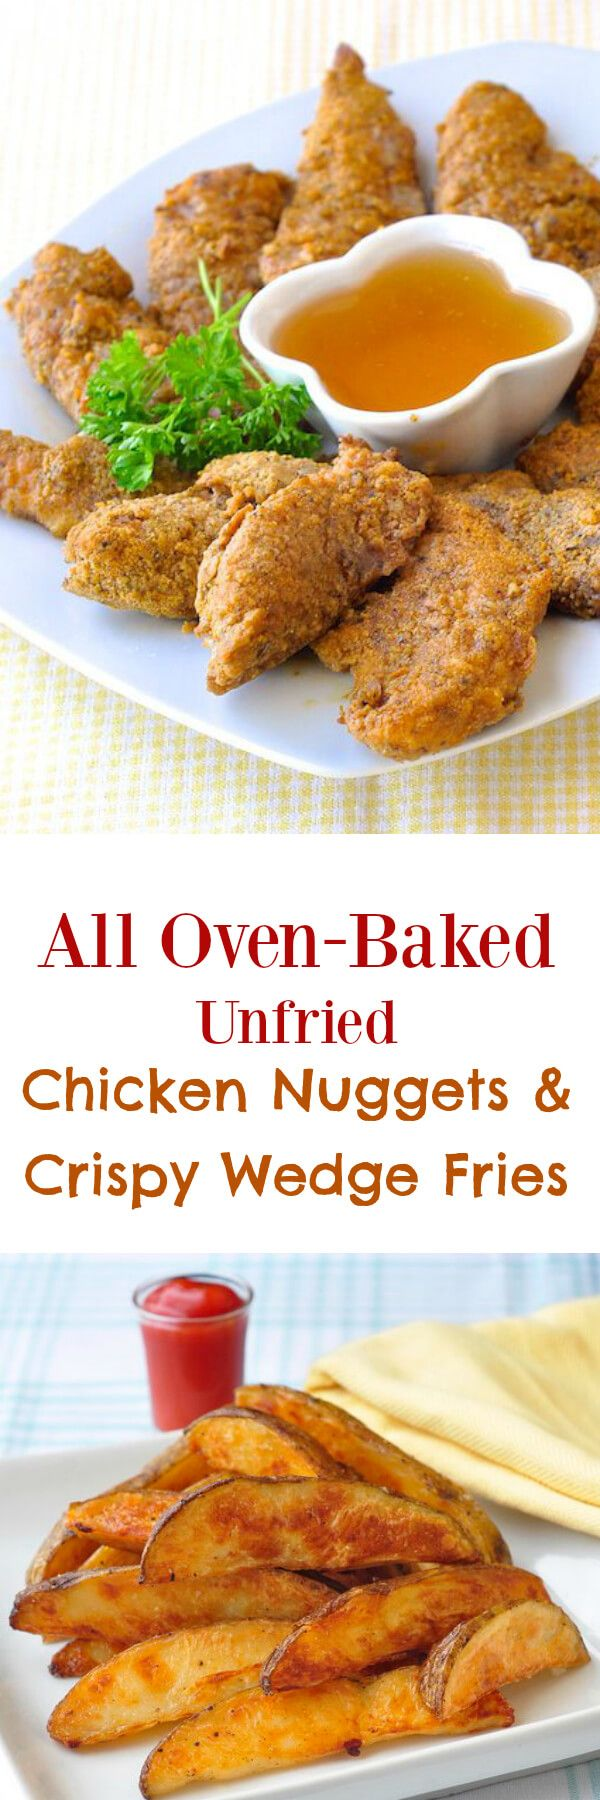 1000+ ideas about Fried Chicken Tenders on Pinterest ...